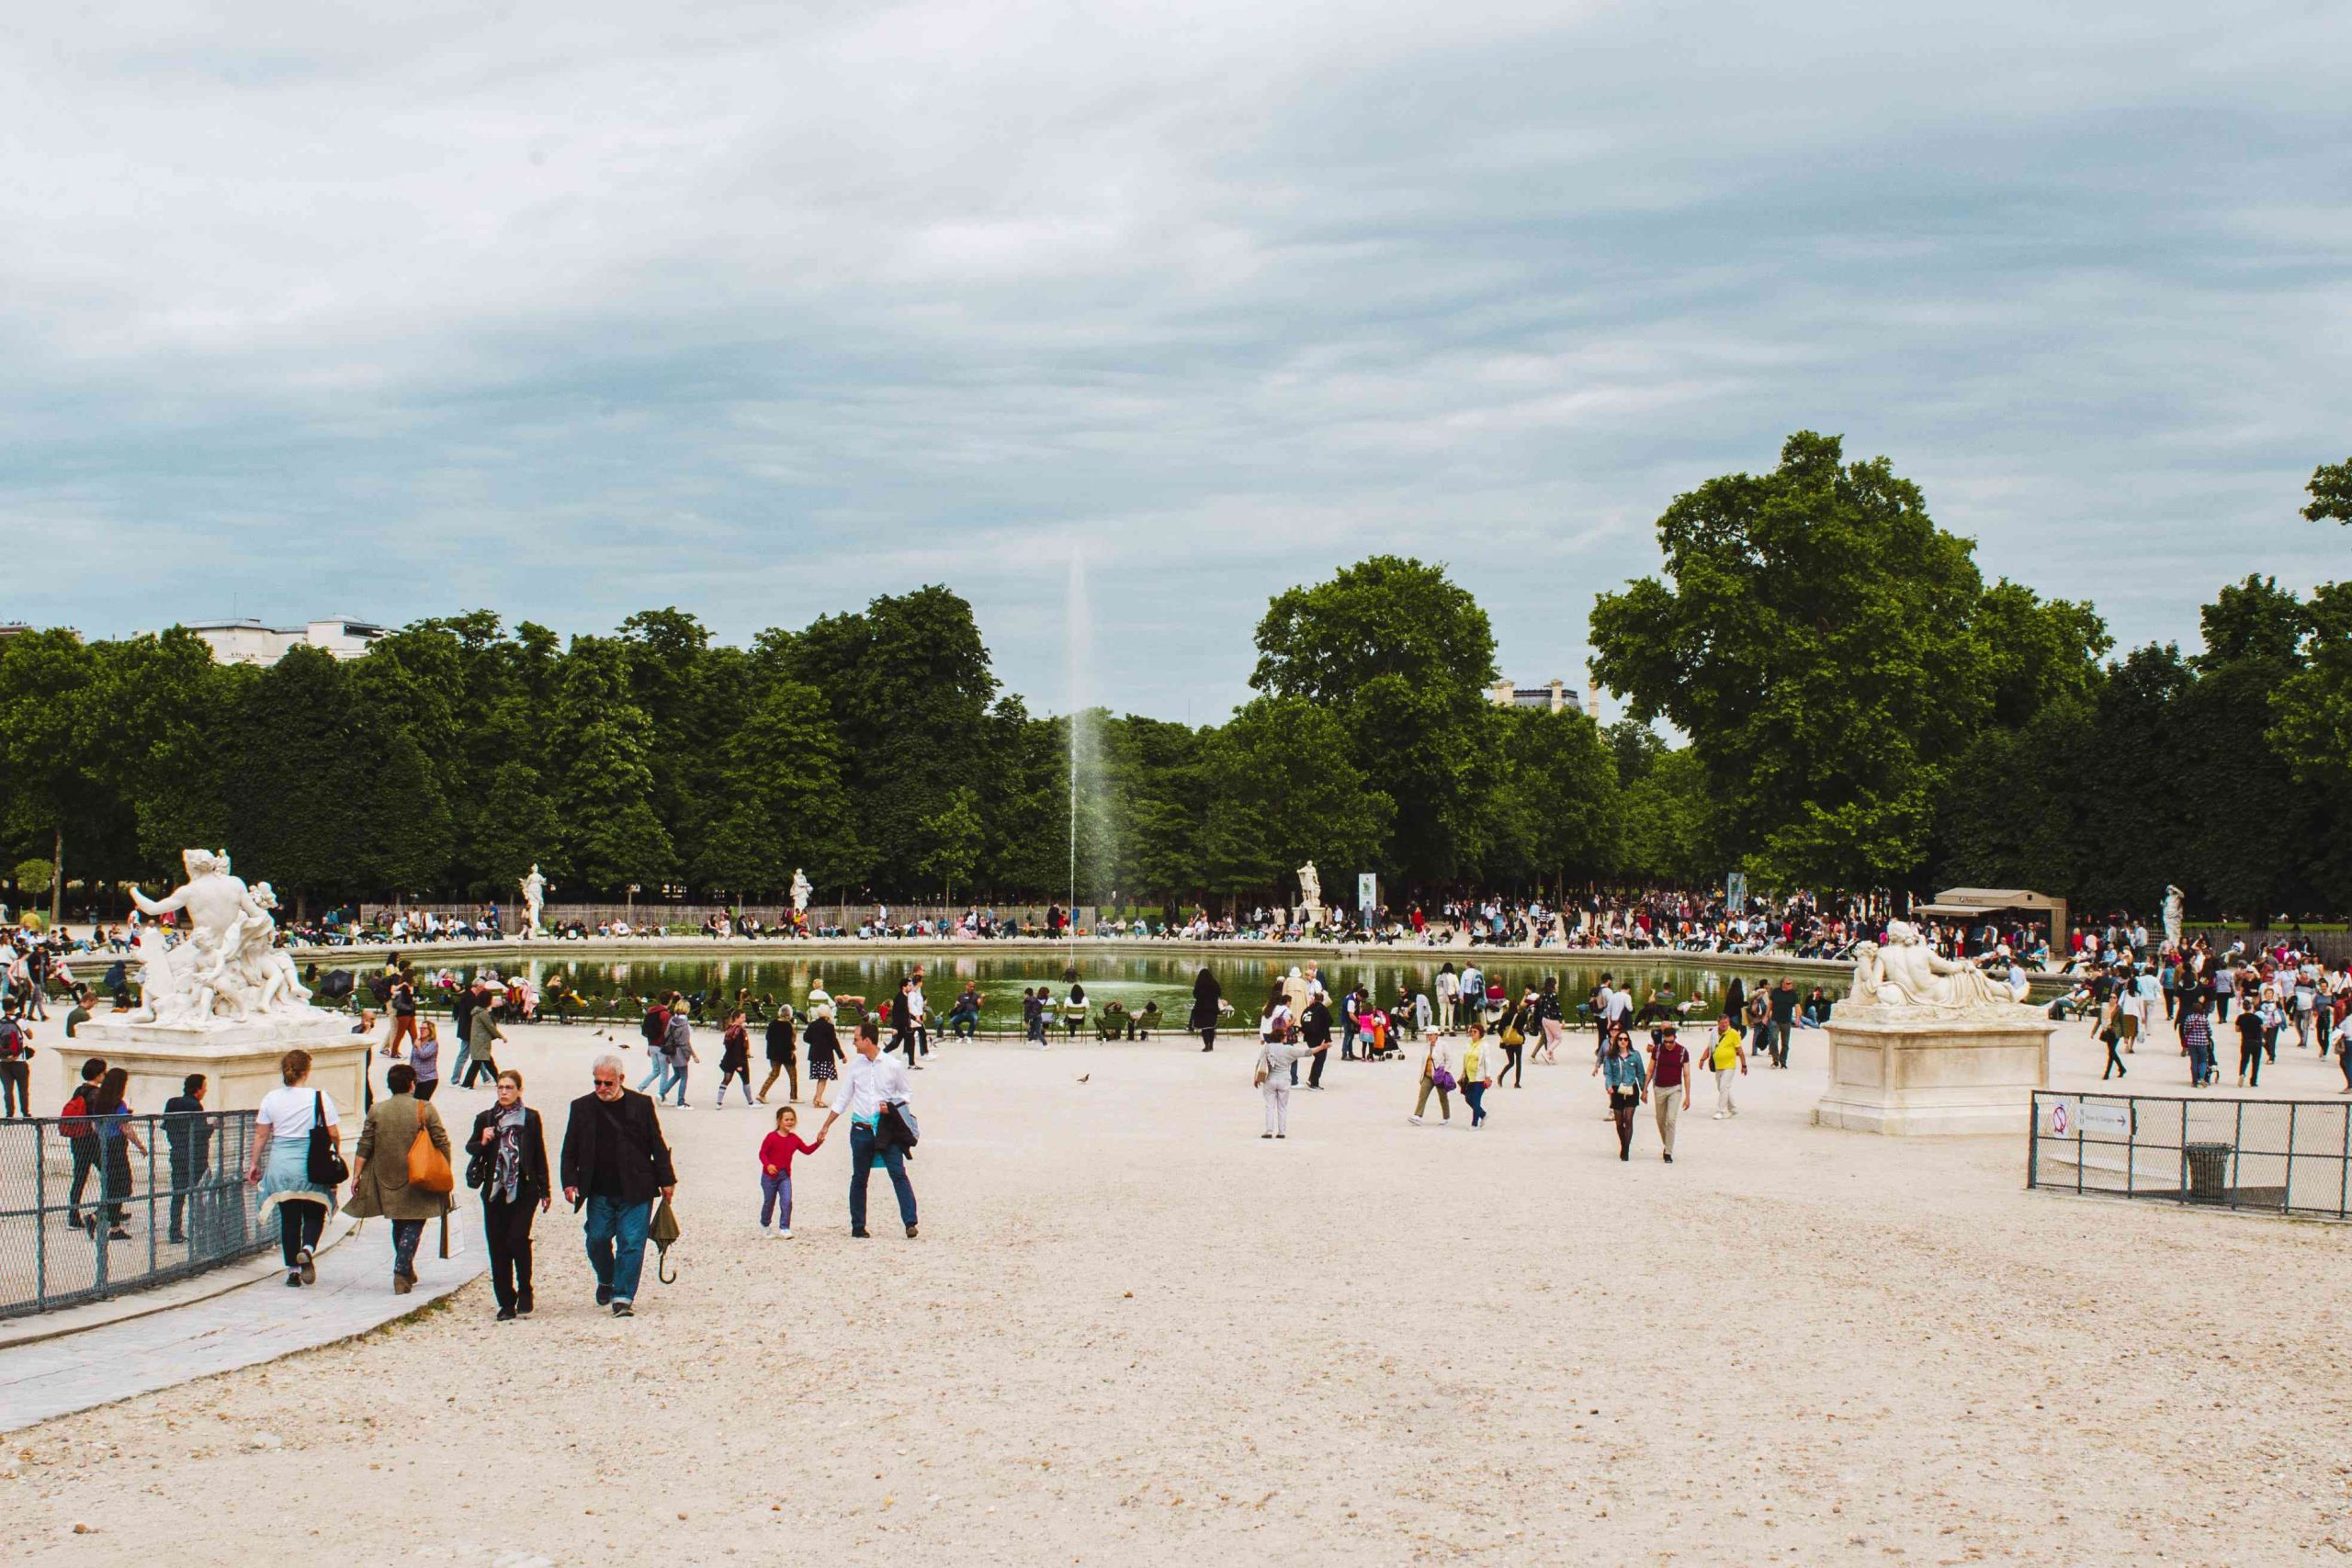 Jardin Du Kohistan Charmant the Jardin Des Tuileries In Paris A Royal Gem Of 80 Frais Jardin Du Kohistan